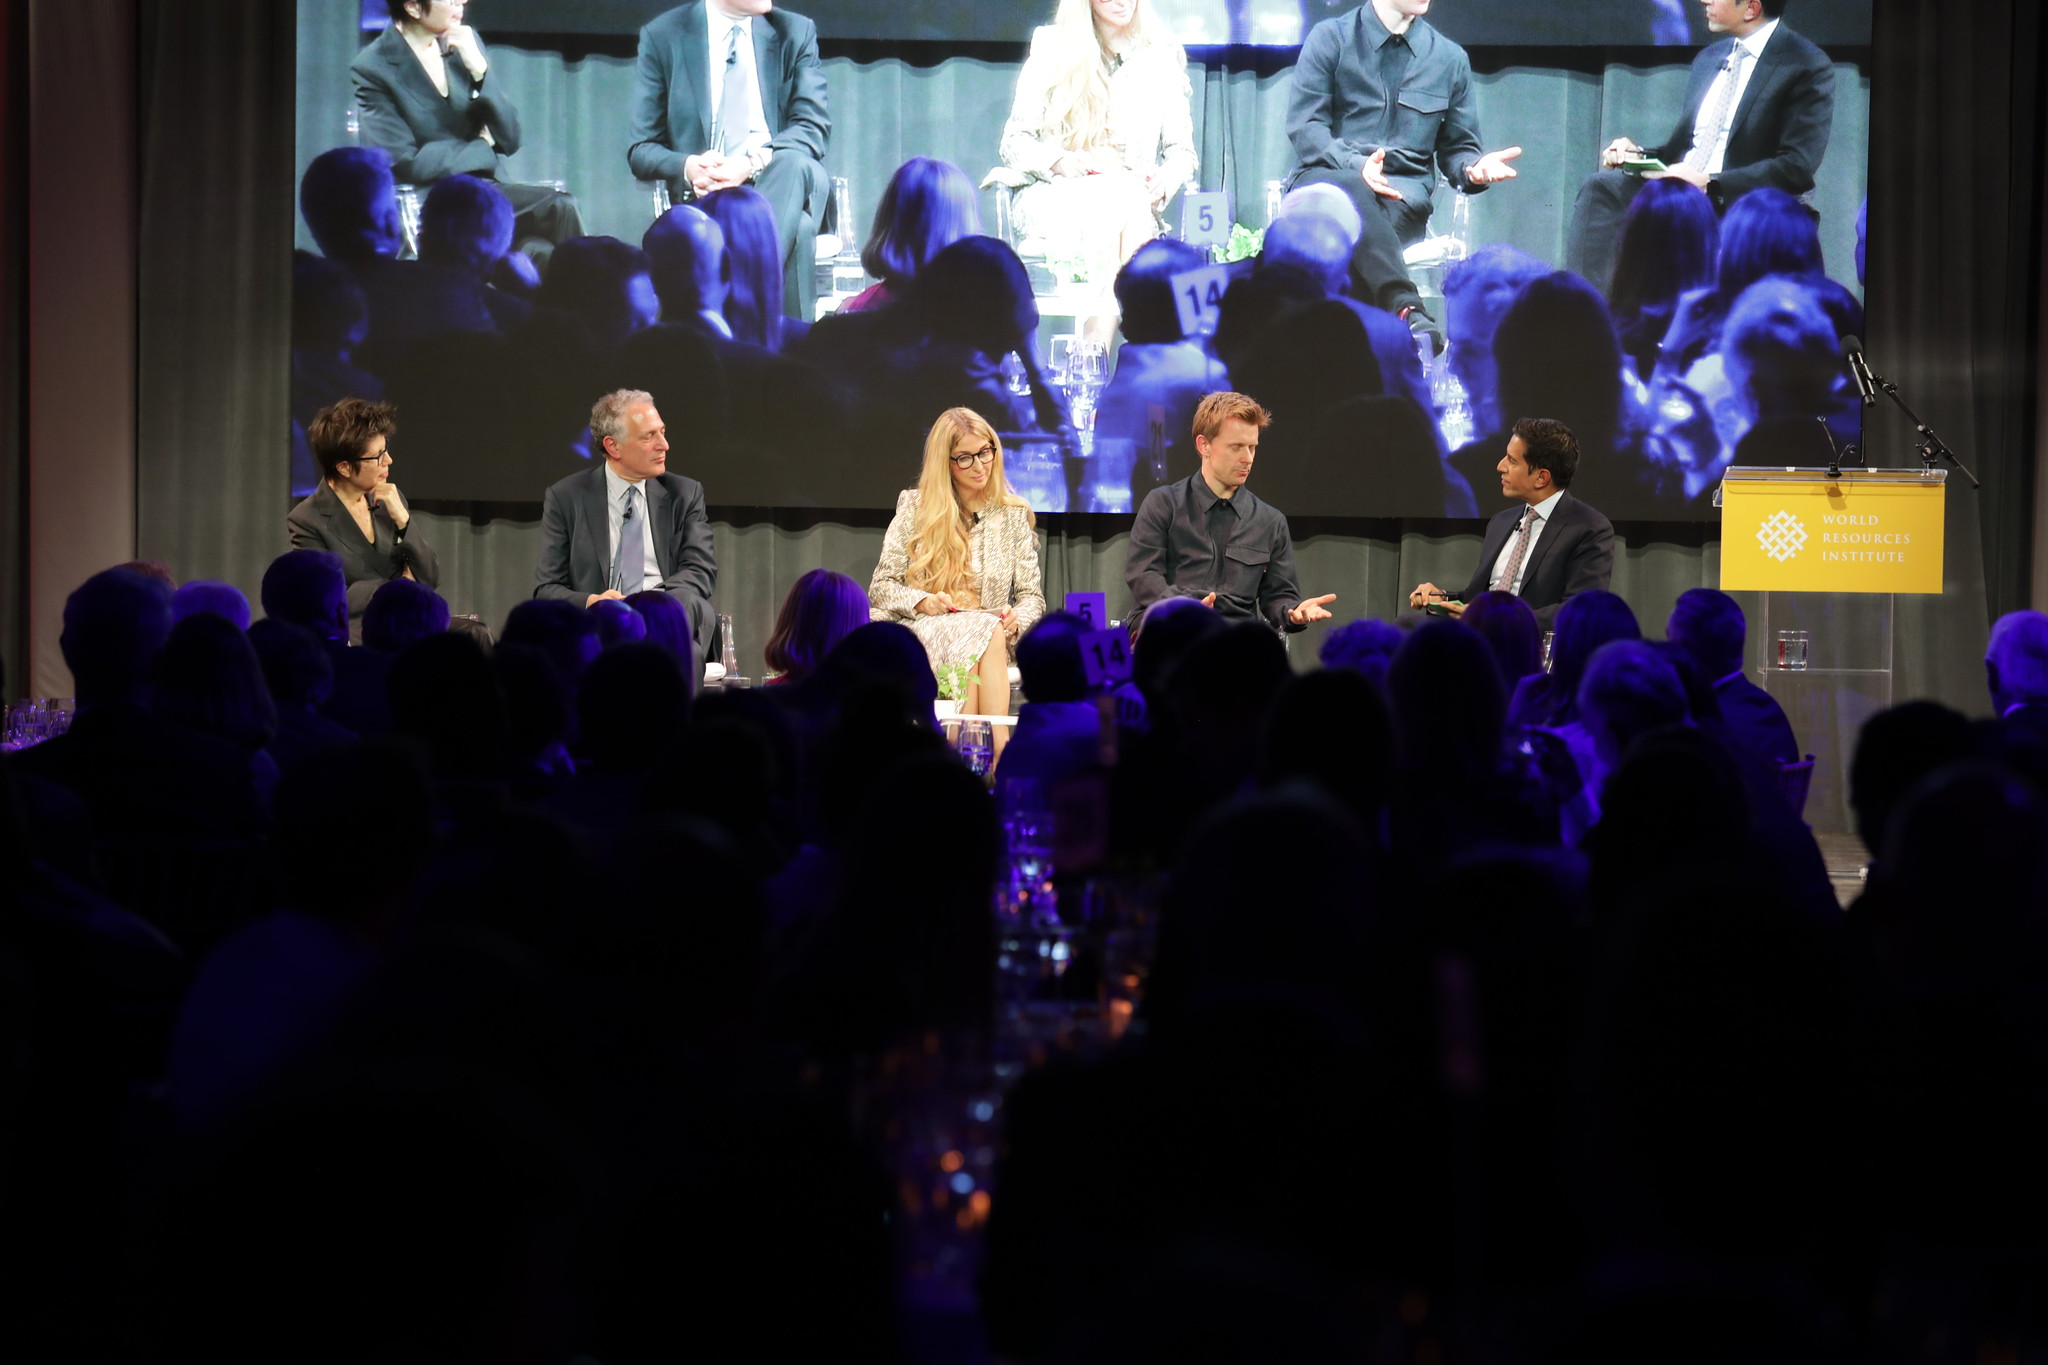 <p>From left to right: Elizabeth Diller, architect and partner of Diller Scofidio + Renfro; Dan Doctoroff, chairman of The Shed and CEO of Sidewalk Labs; Ann Rosenberg, Senior VP & Global Head of SAP Next-Gen; Stuart Wood, Group Leader of Heatherwick Studio; Dr. Sanjay Gupta, CNN chief medical correspondent. Photo by WRI</p>